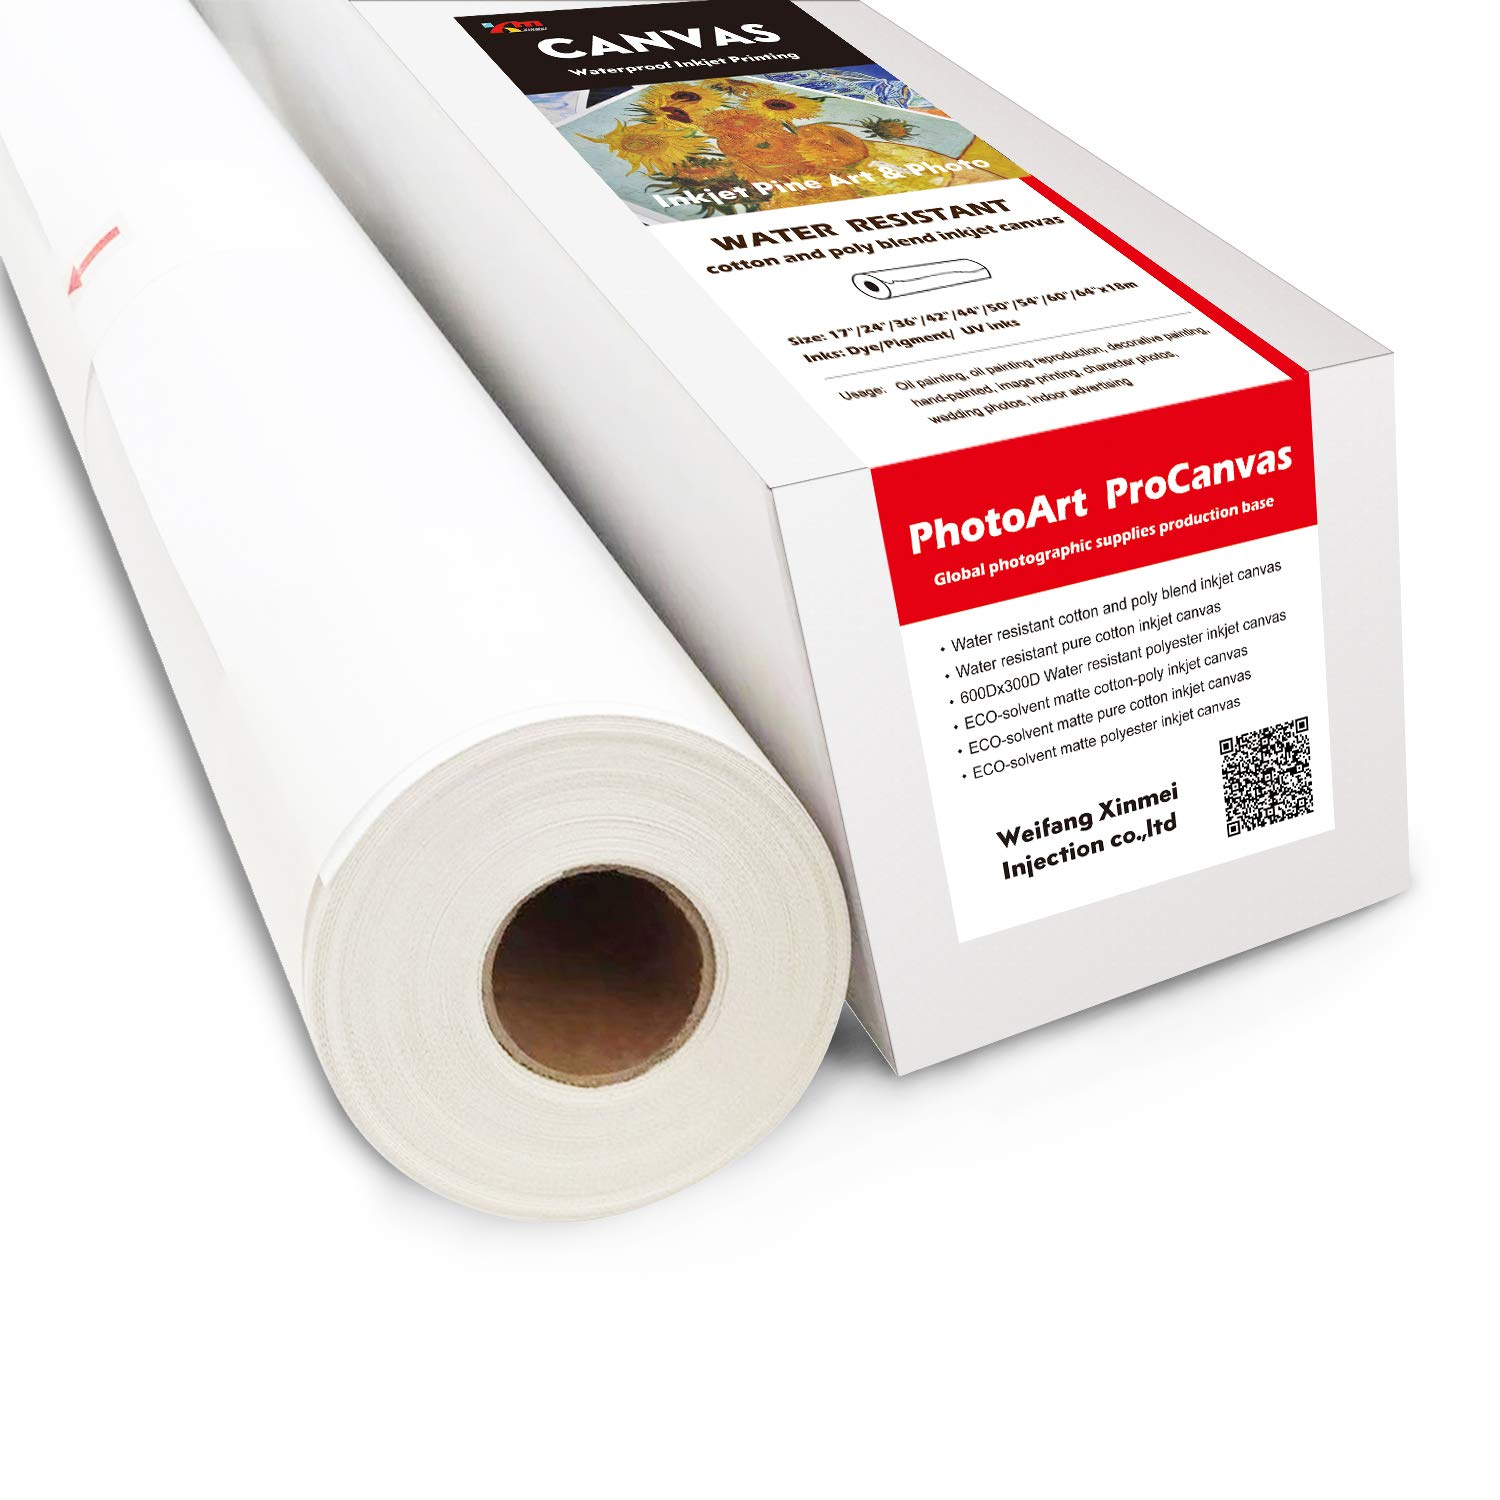 Water Resistant Cotton and Poly Blend Inkjet Canvas (60'' x 60'(Pack of 2)) by Sheepcamel